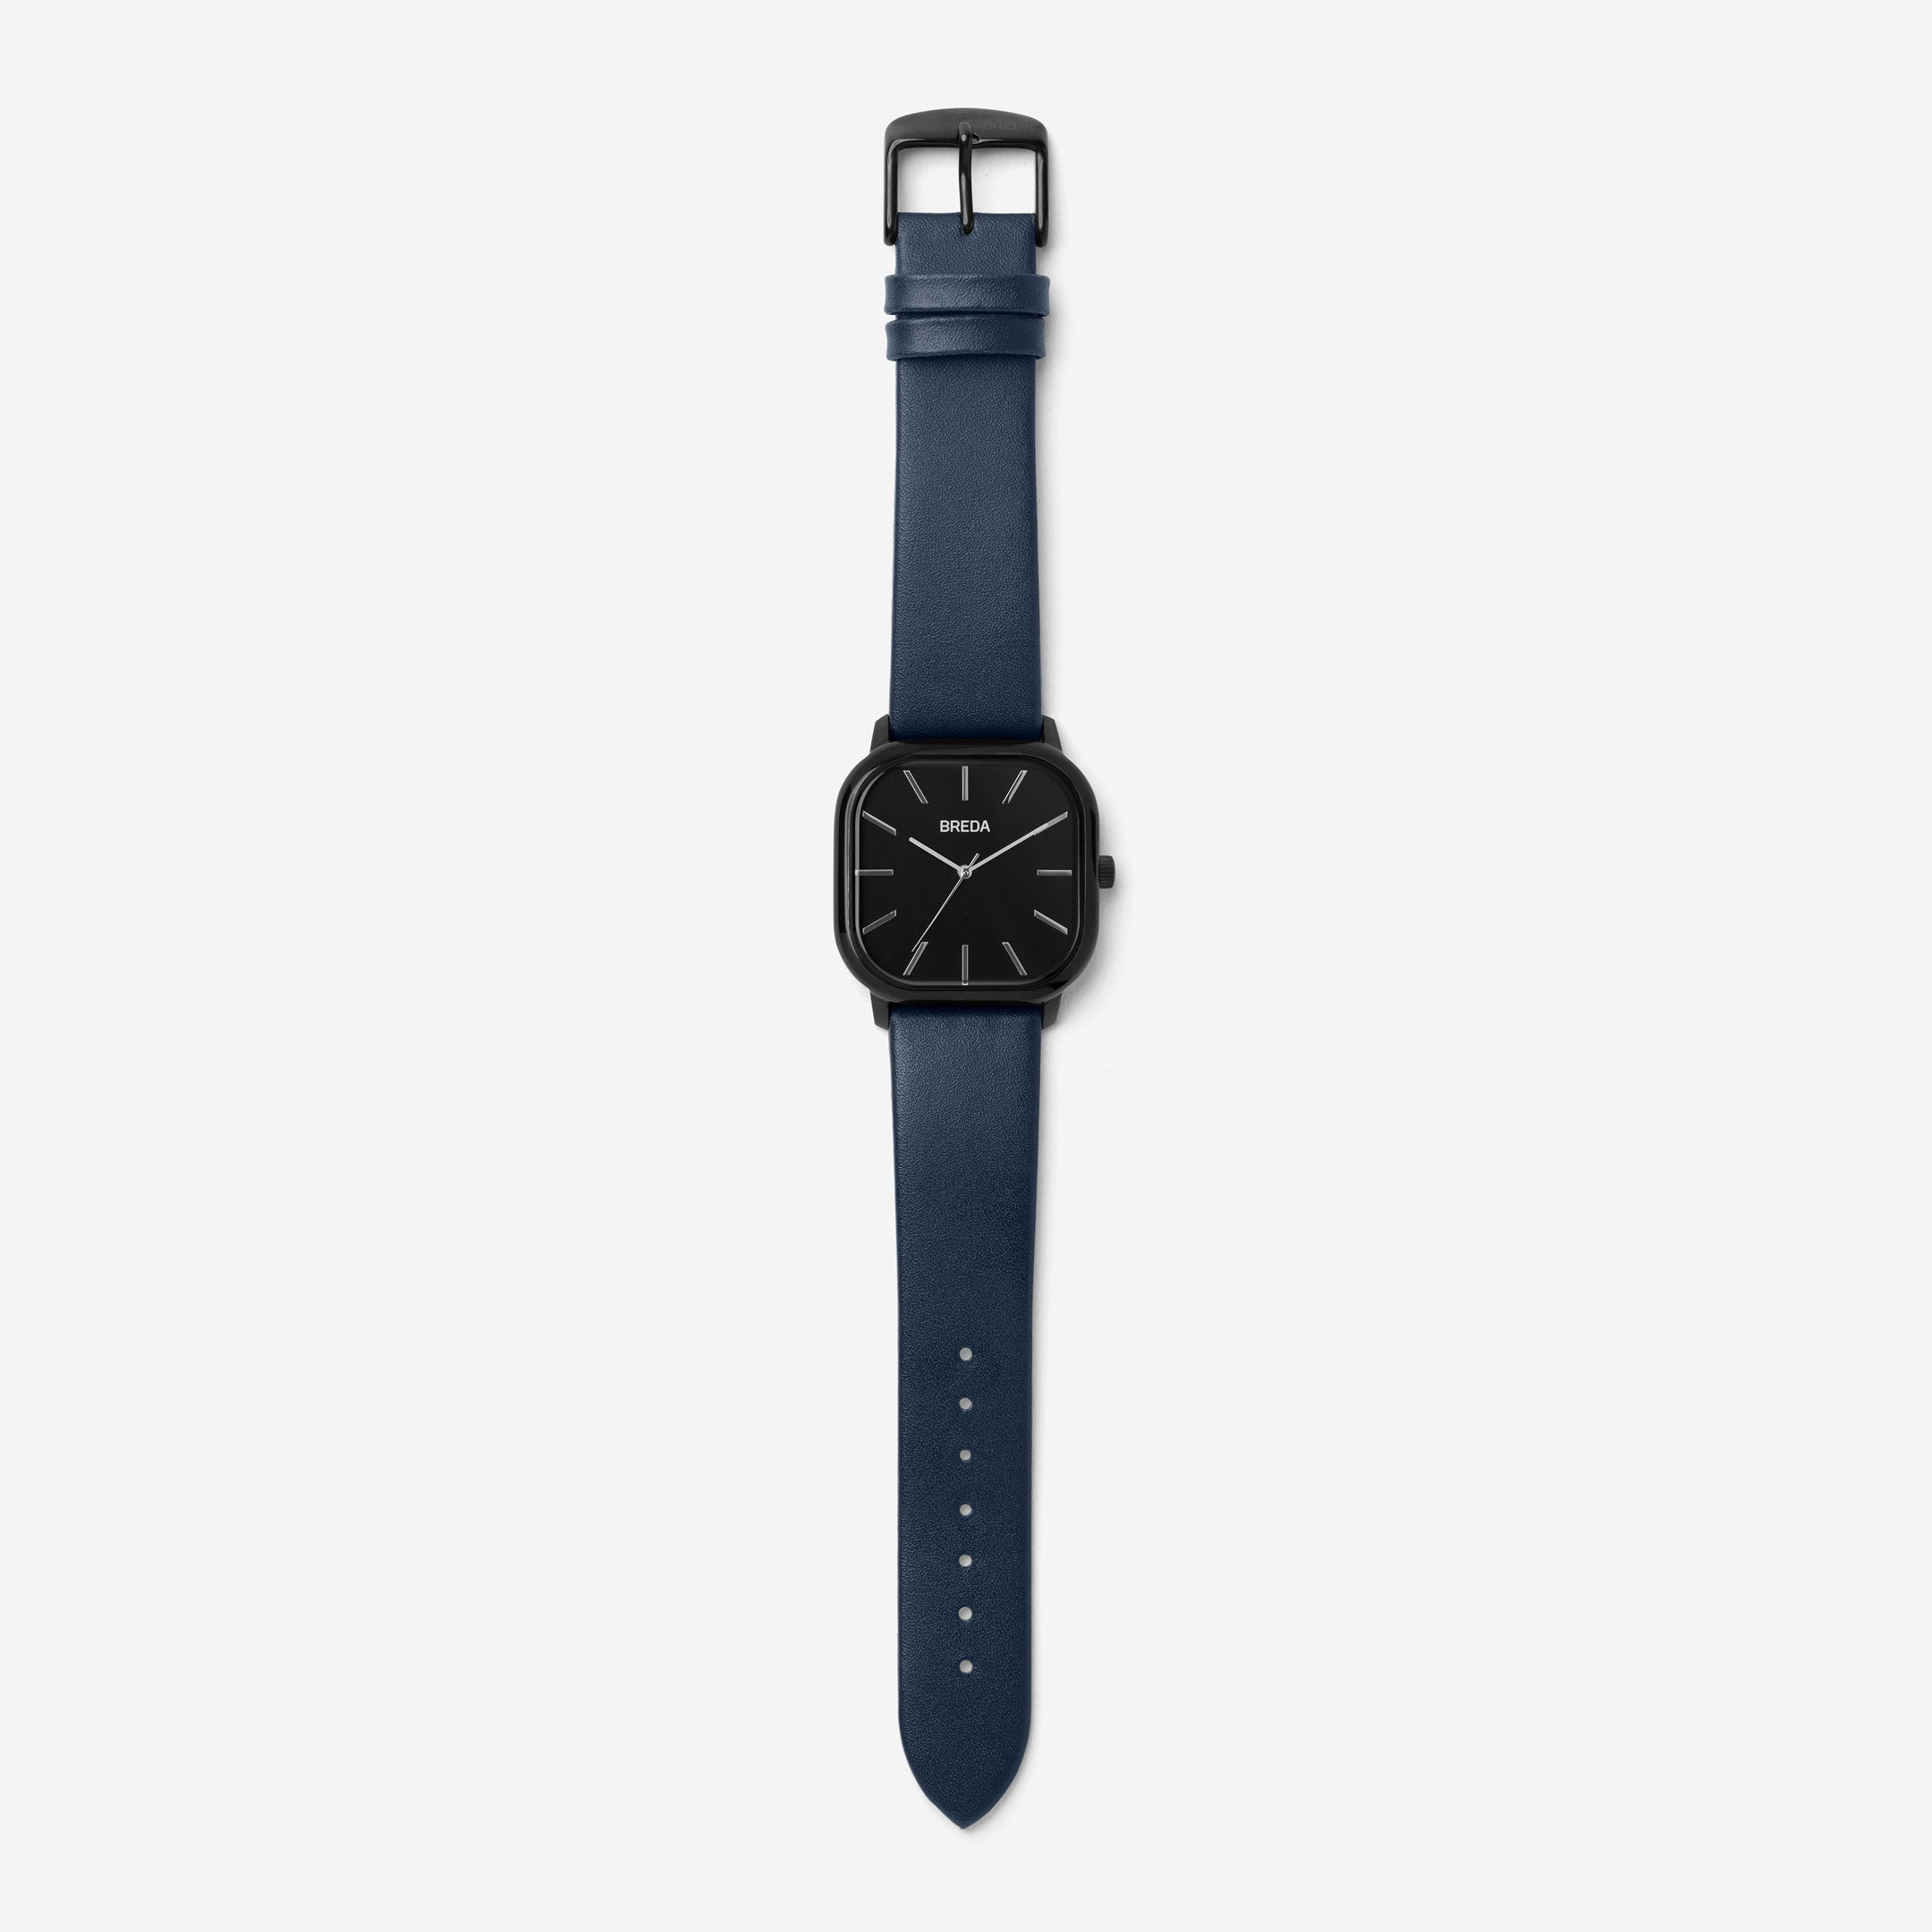 //cdn.shopify.com/s/files/1/0879/6650/products/breda-visser-1728d-black-navy-leather-watch-long_1024x1024.jpg?v=1506957501